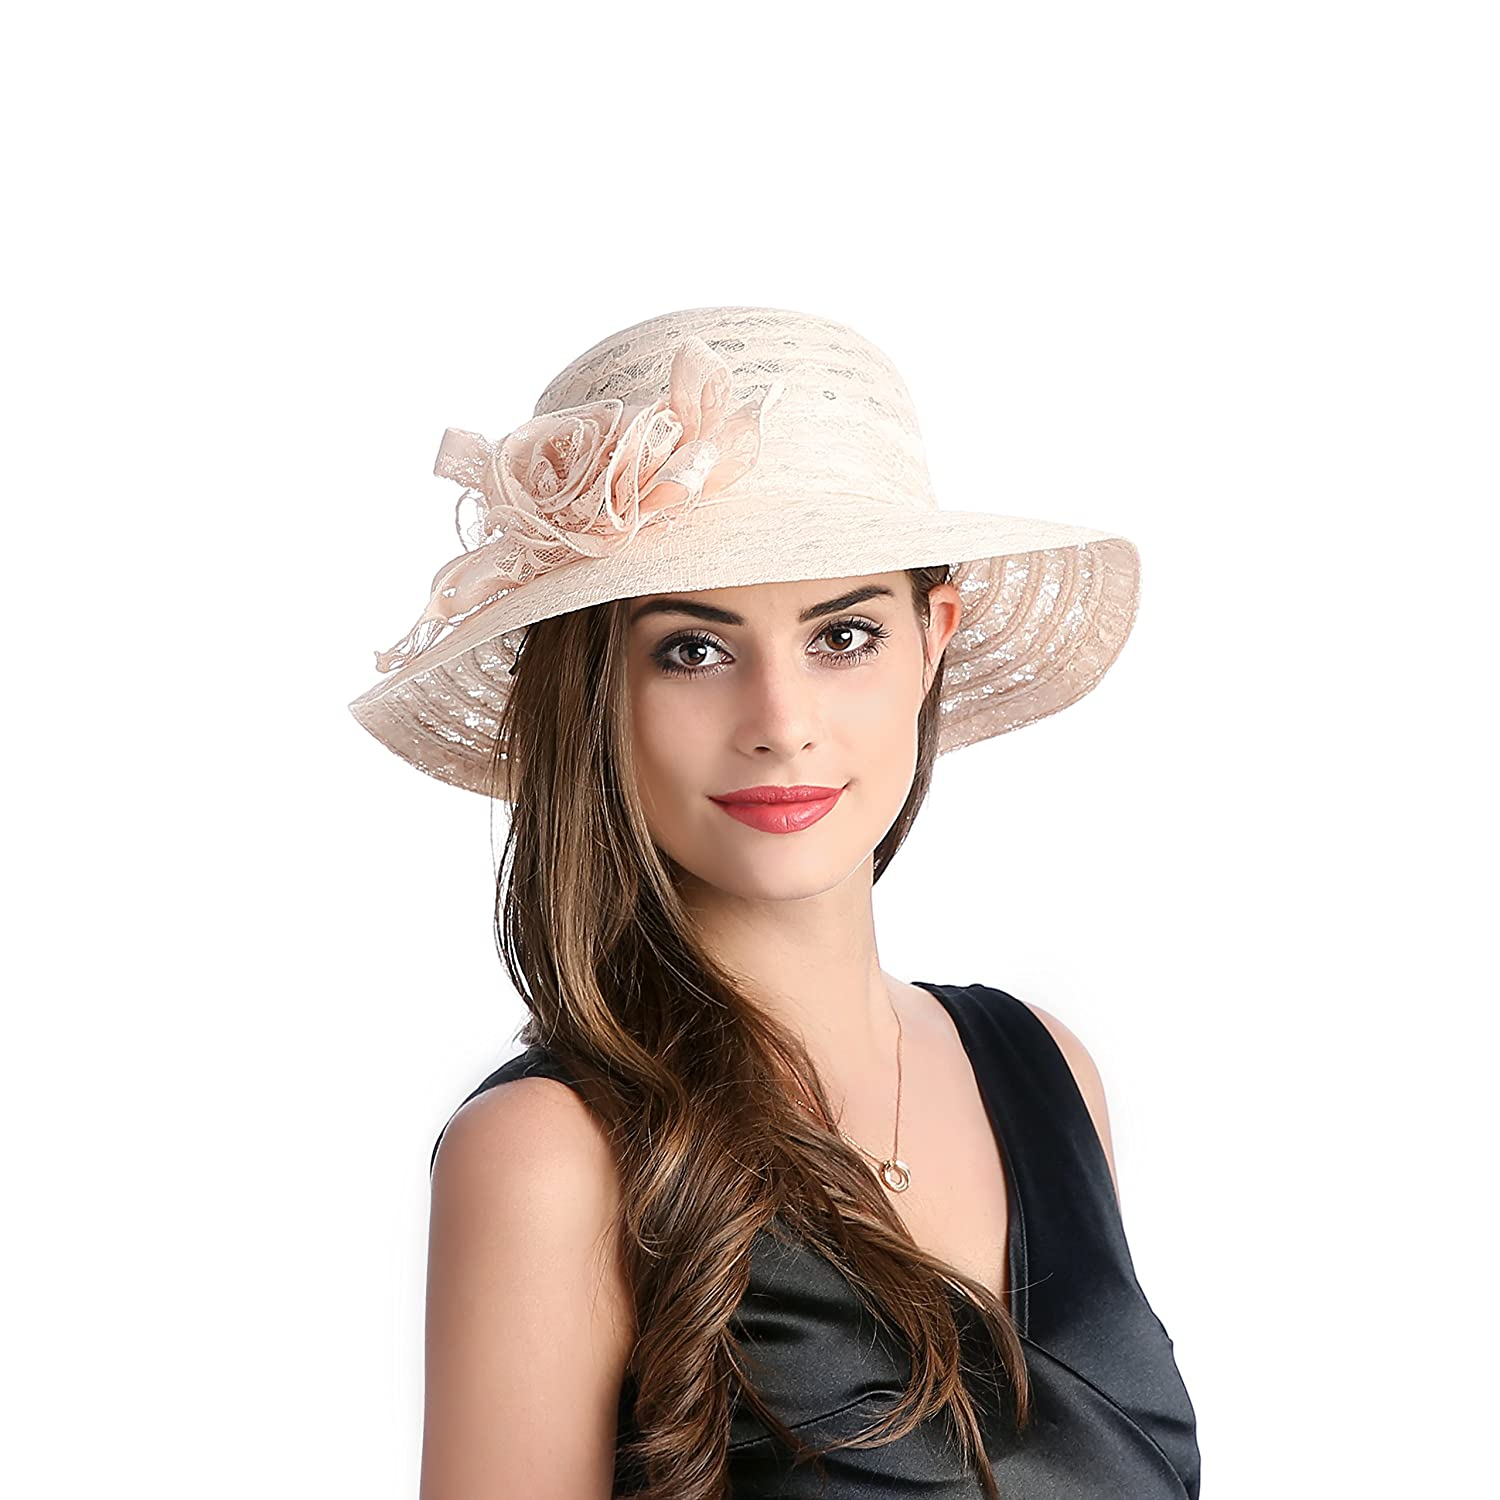 1930s Style Hats | Buy 30s Ladies Hats Dantiya Summer Lace Beach Sun Hat Kentucky Derby Church Dress Bucket Hat $14.99 AT vintagedancer.com